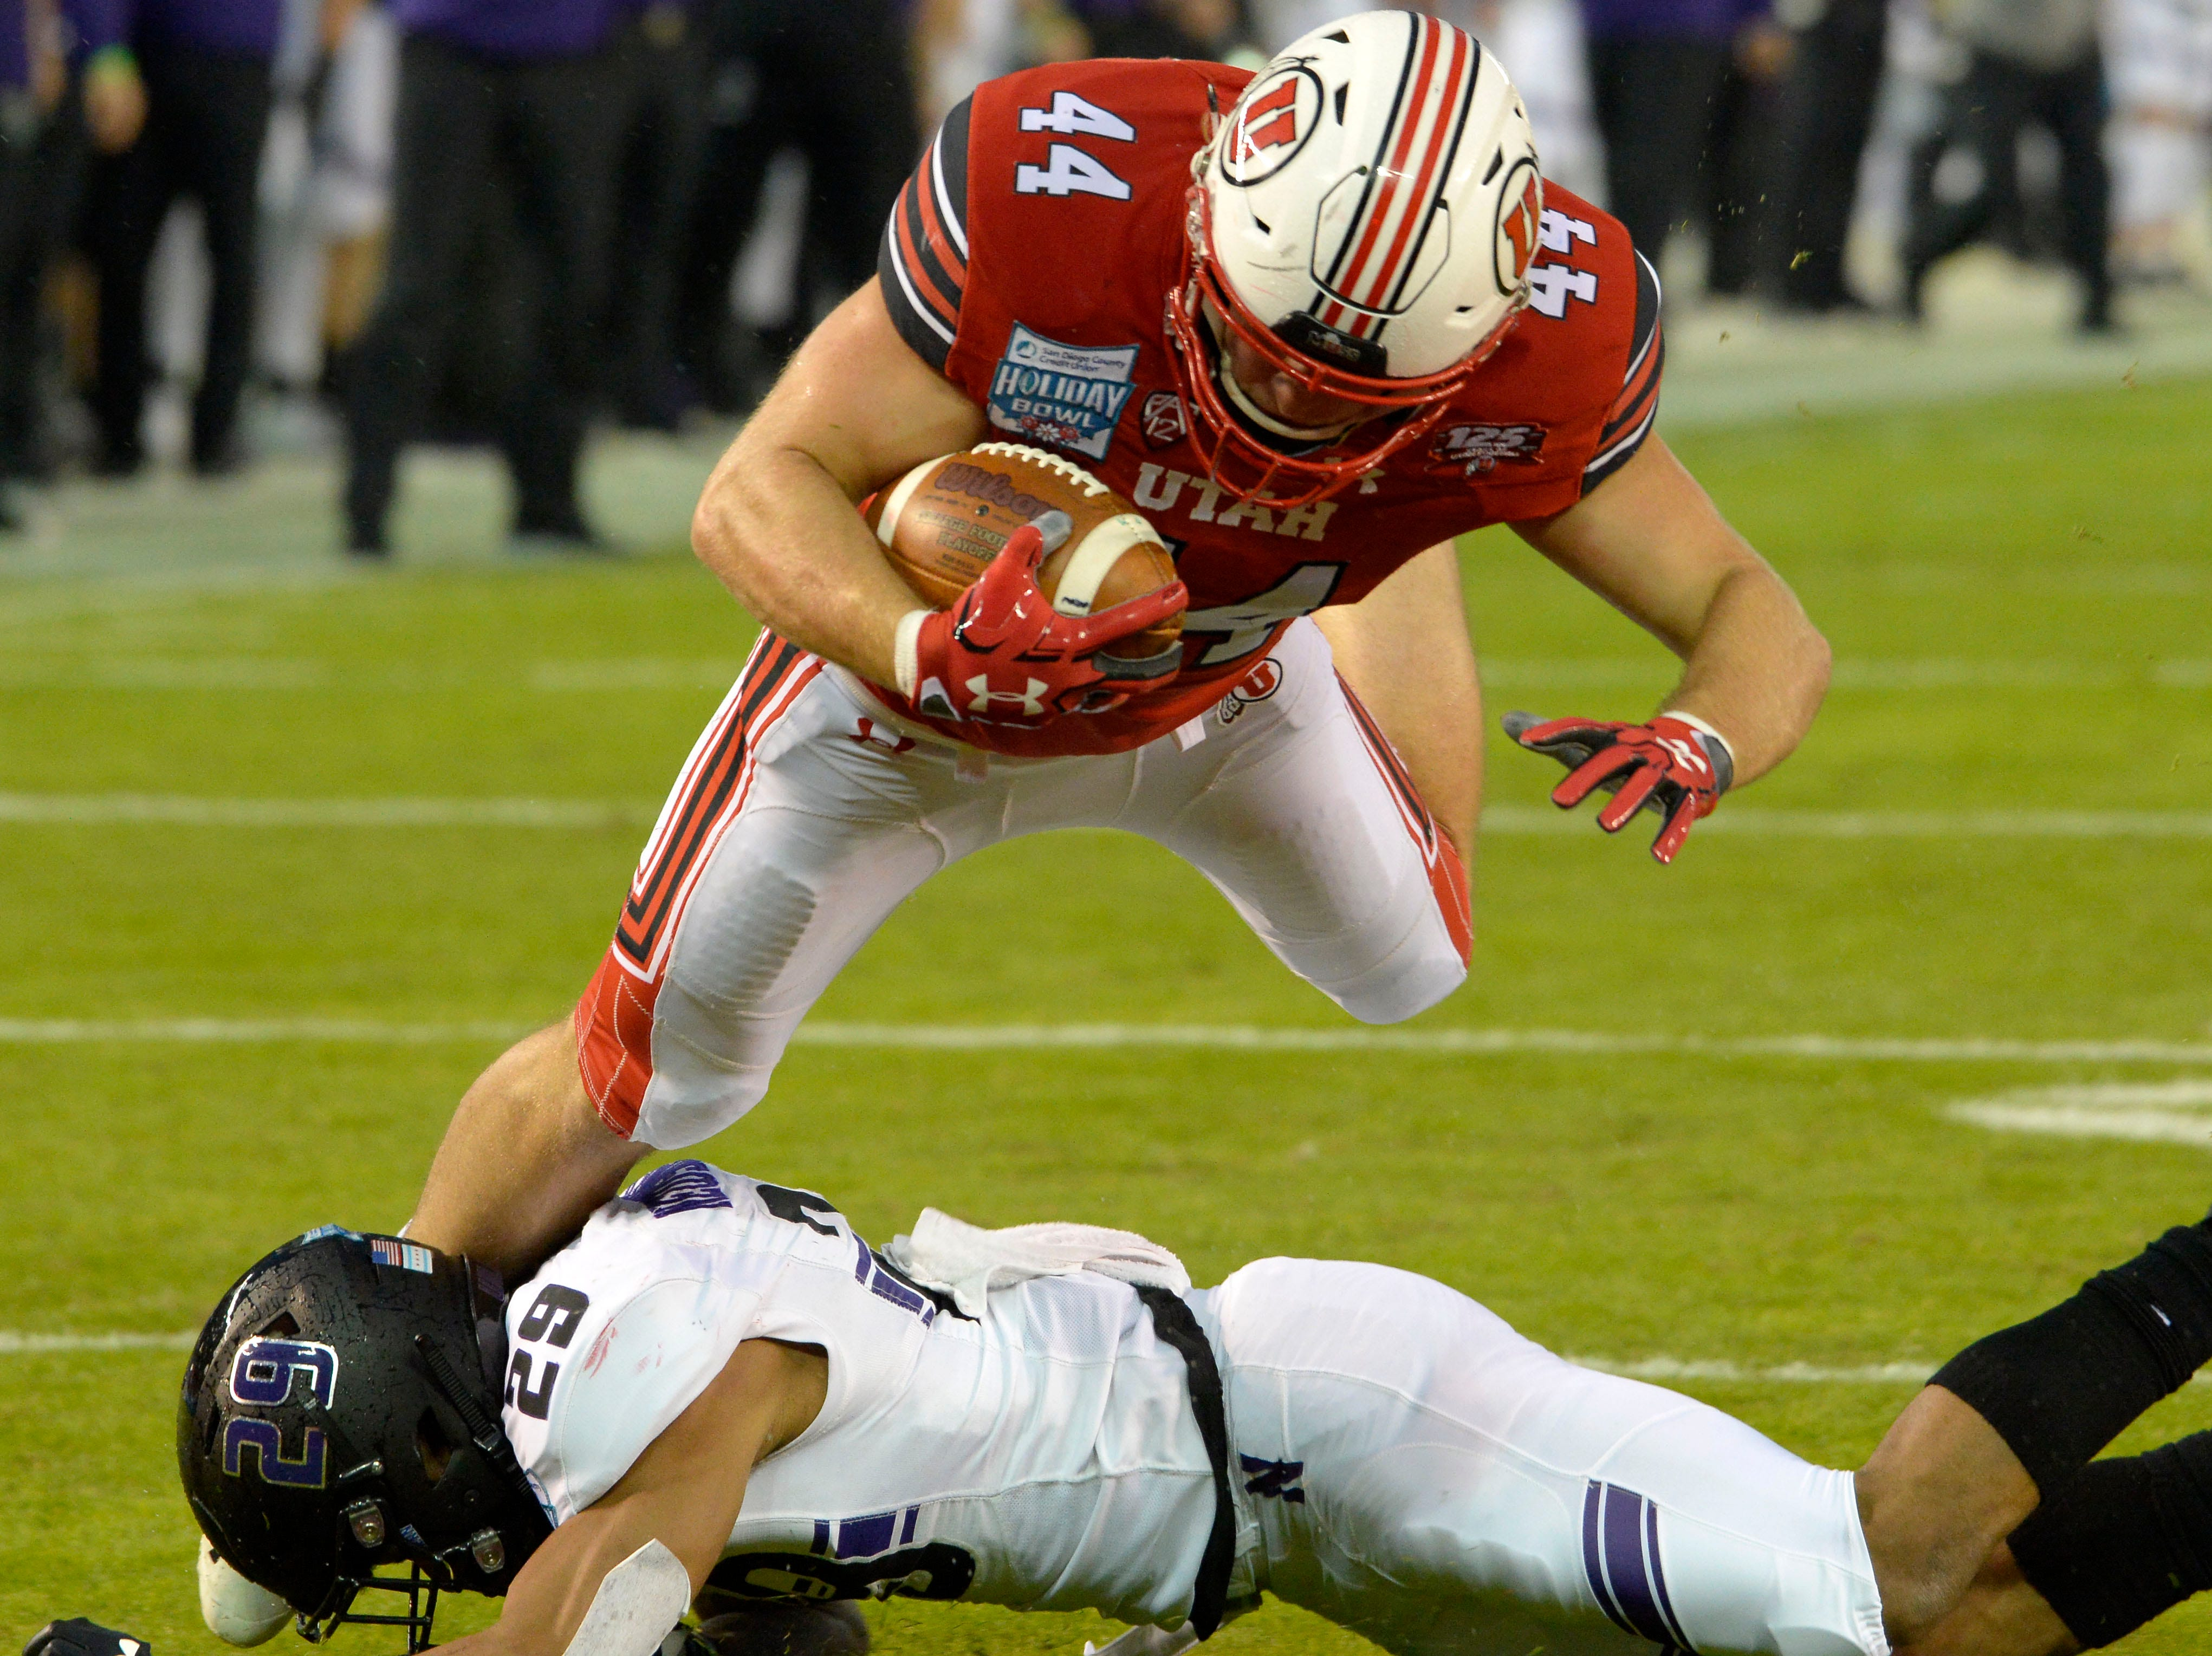 Utah Utes tight end Jake Jackson (44) scores a touchdown as Northwestern Wildcats defensive back Greg Newsome II (29) defends during the first quarter in the Holiday Bowl.